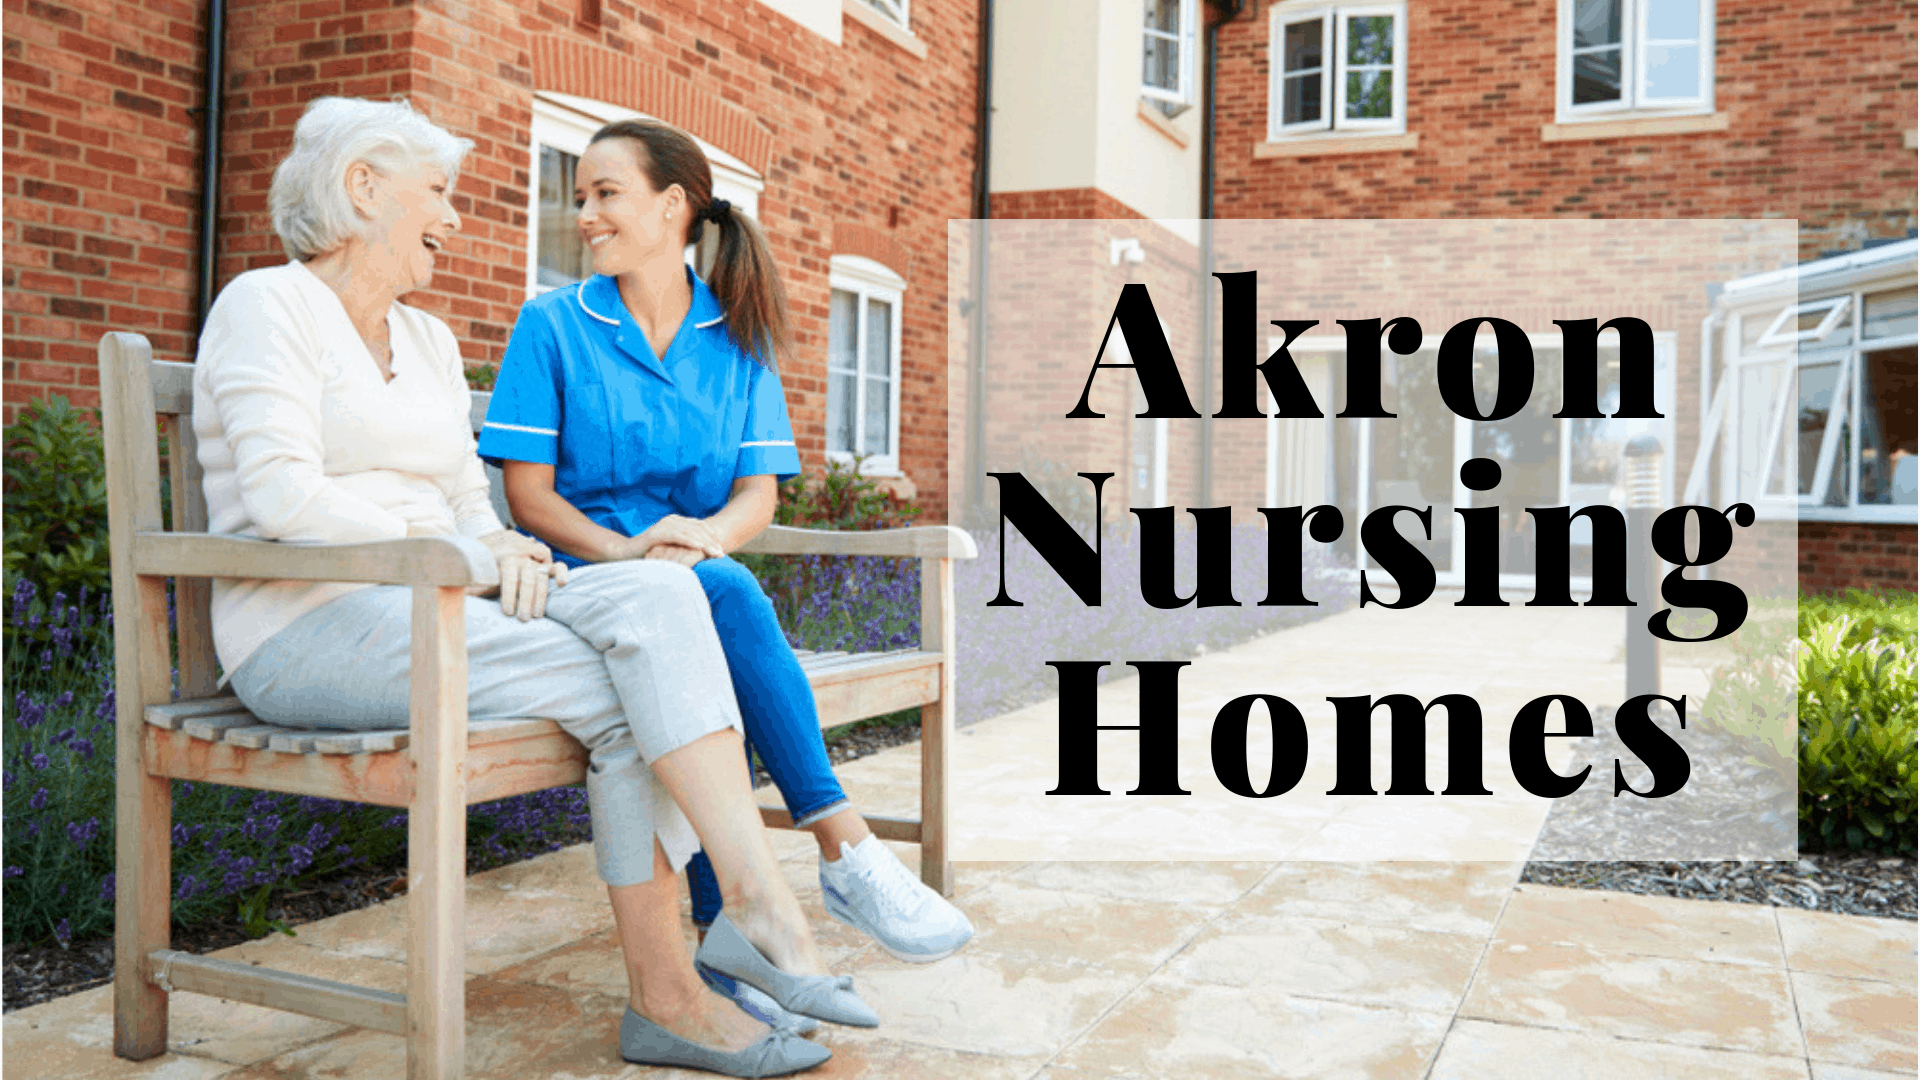 Nursing Homes in Akron, OH